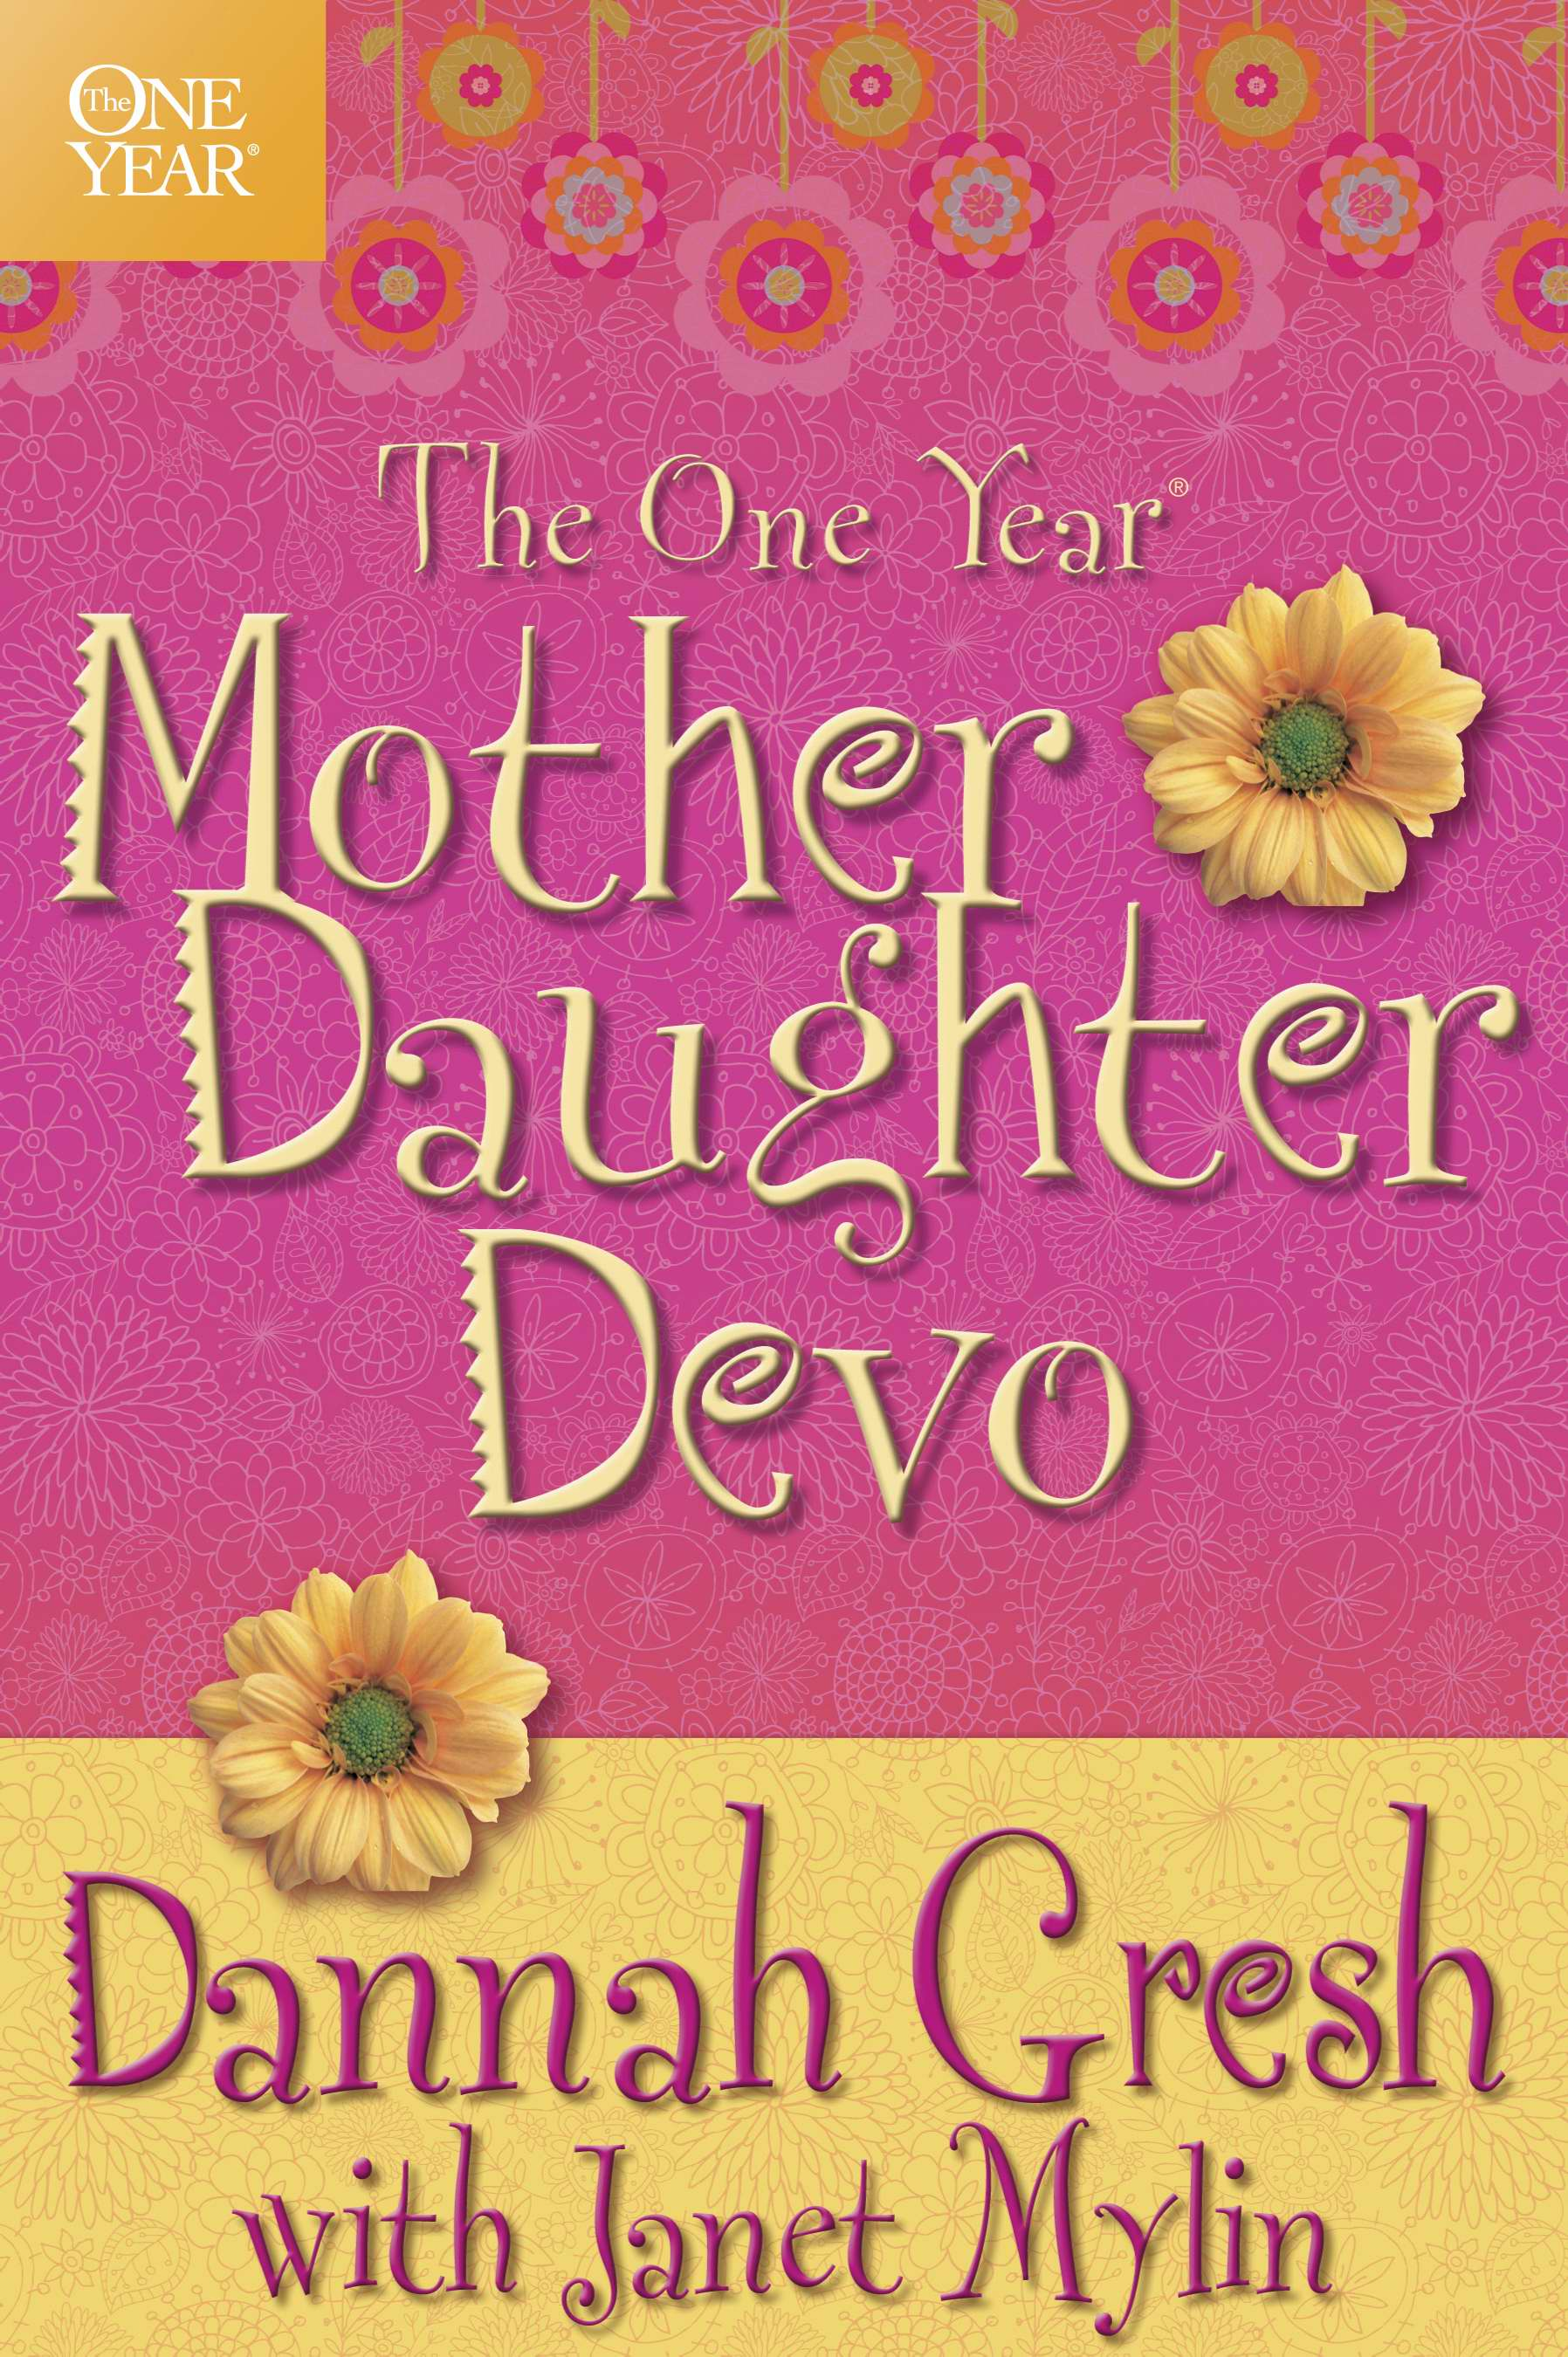 One Year Mother-Daughter Devo